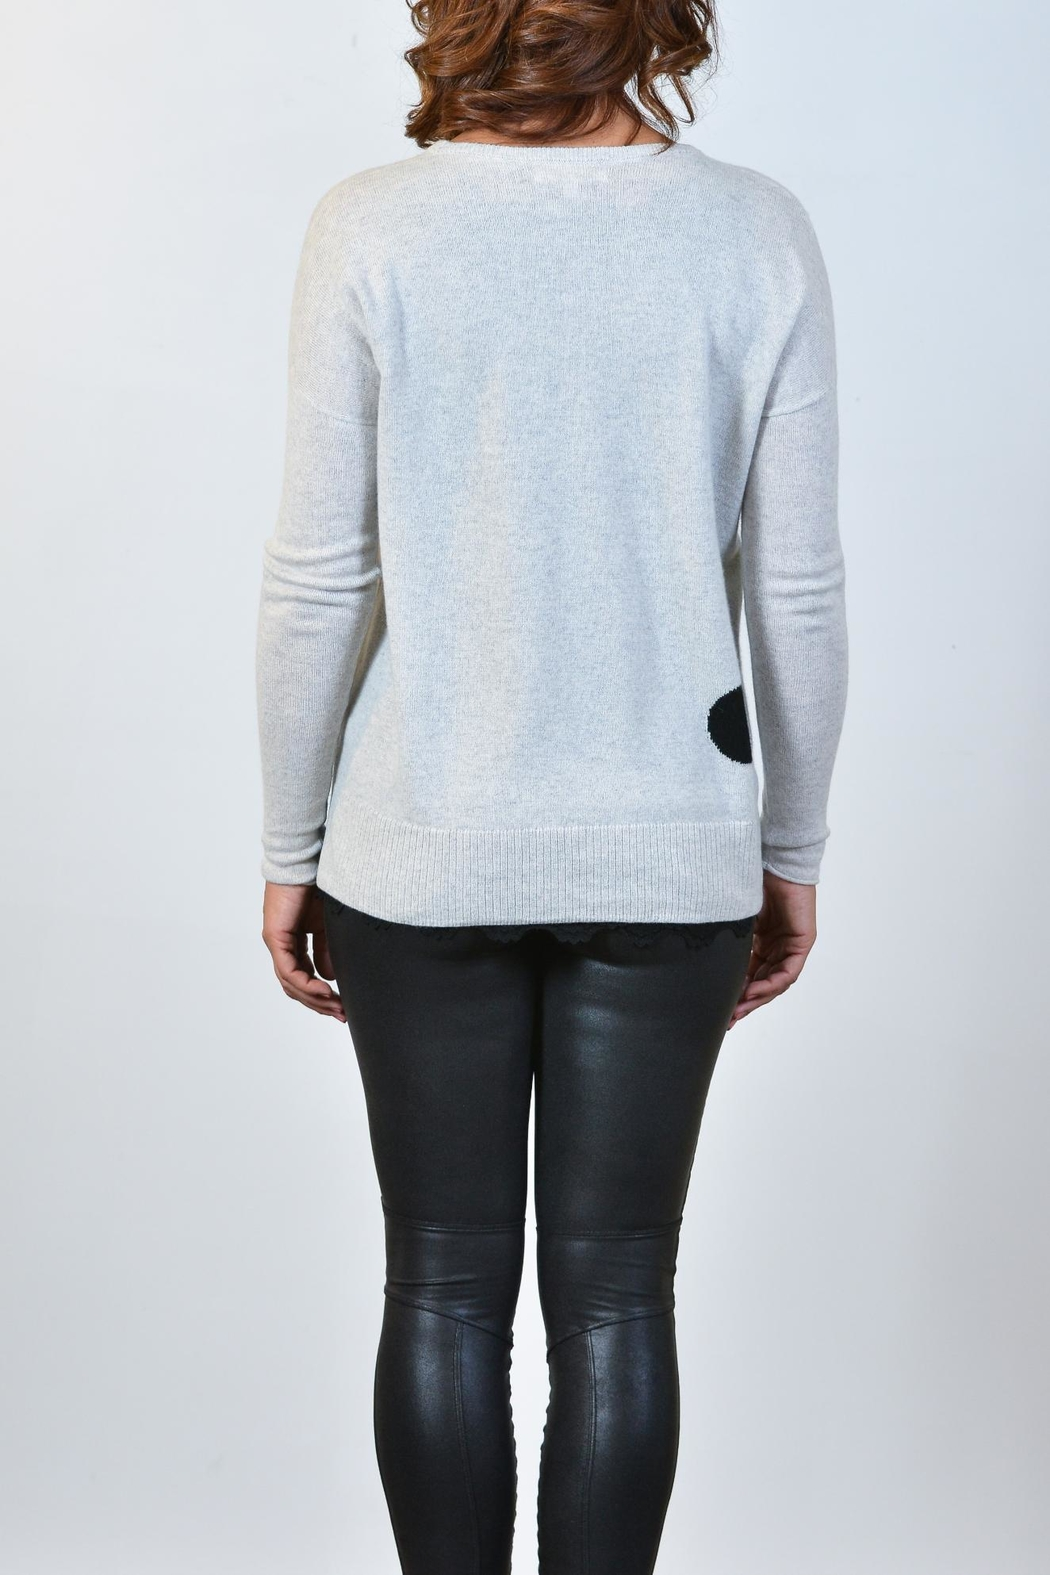 Lisa Todd Hot Spots Cashmere Sweater - Front Full Image